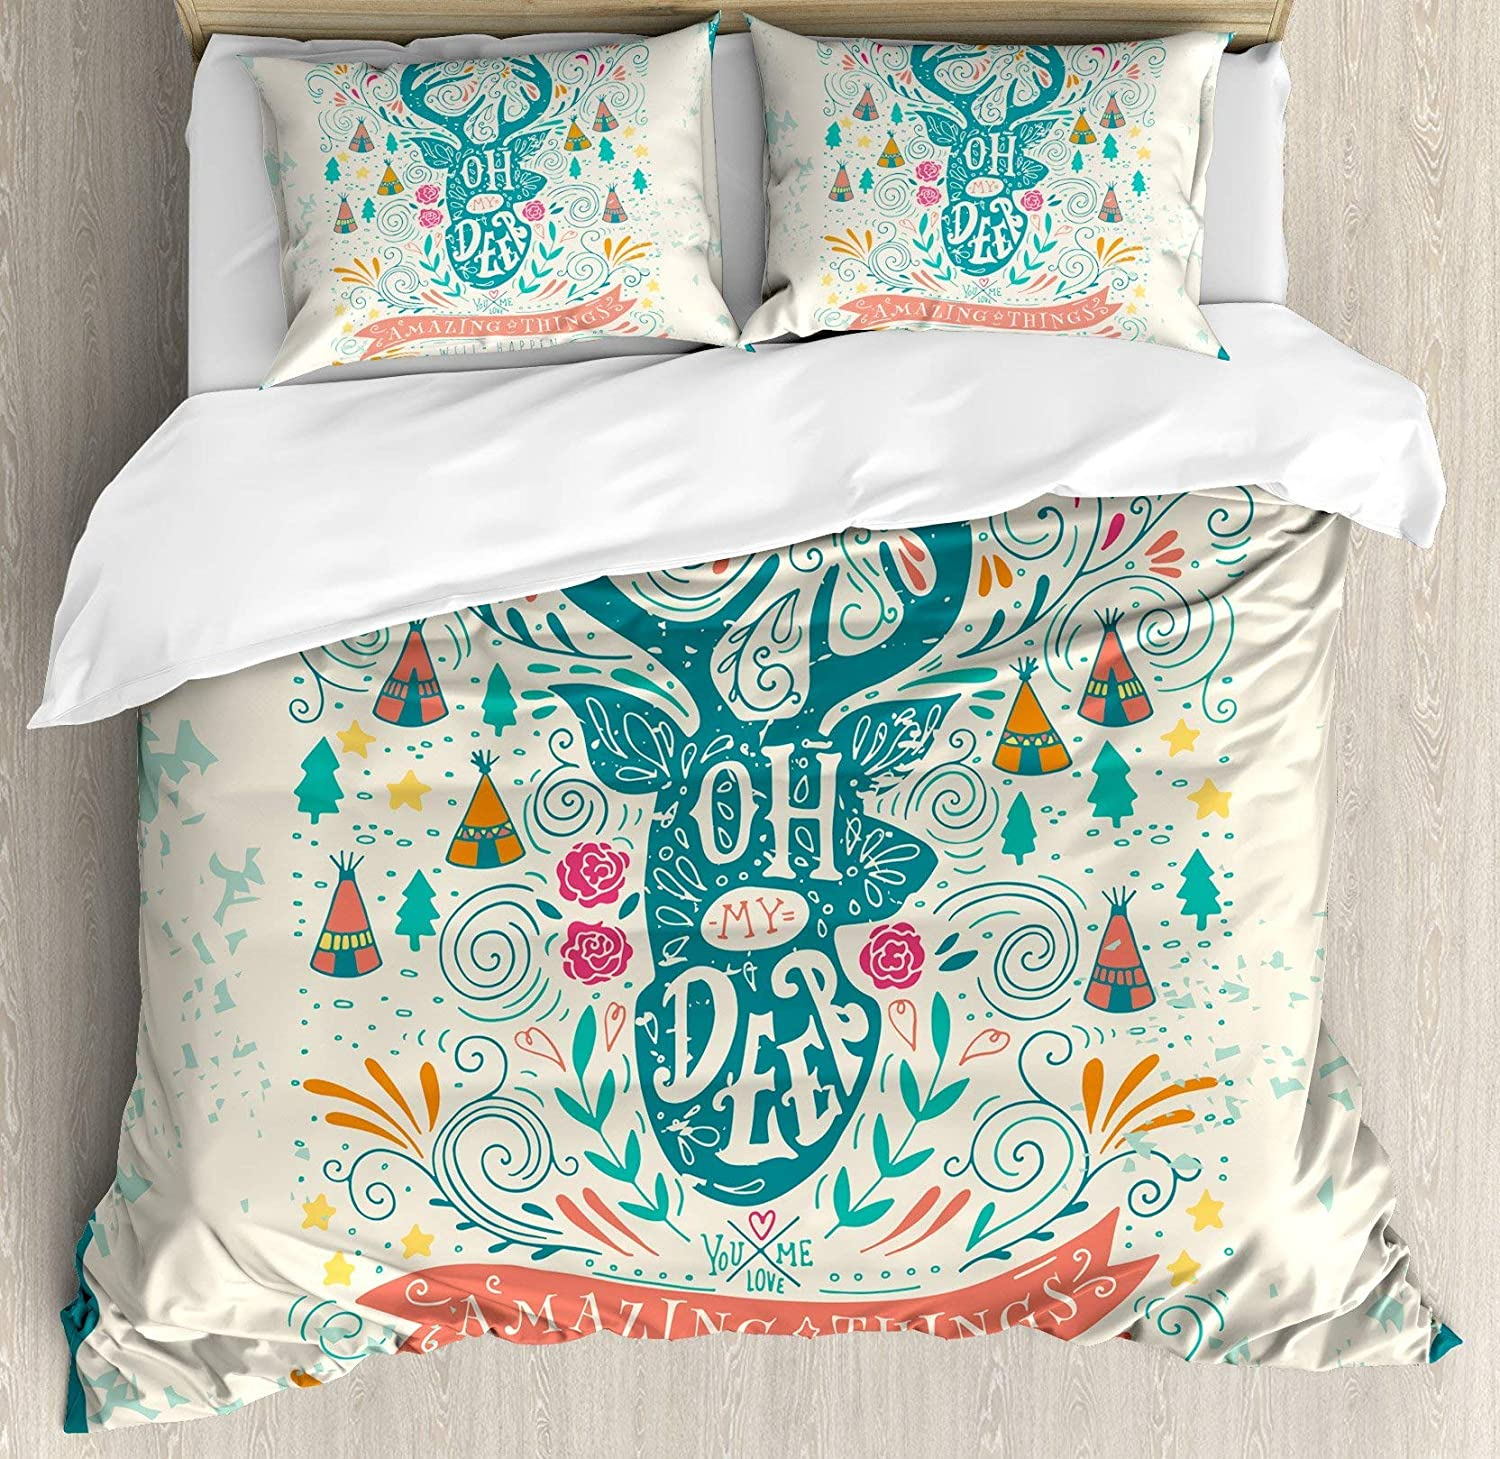 Multi 1 Queen BULING Modern 4pc Bedding Set Twin Size, Surf Typography in Rainbow colors Featured with Palm Tree Silhouette Illustration Floral Lightweight Microfiber Duvet Cover Set, Multicolor